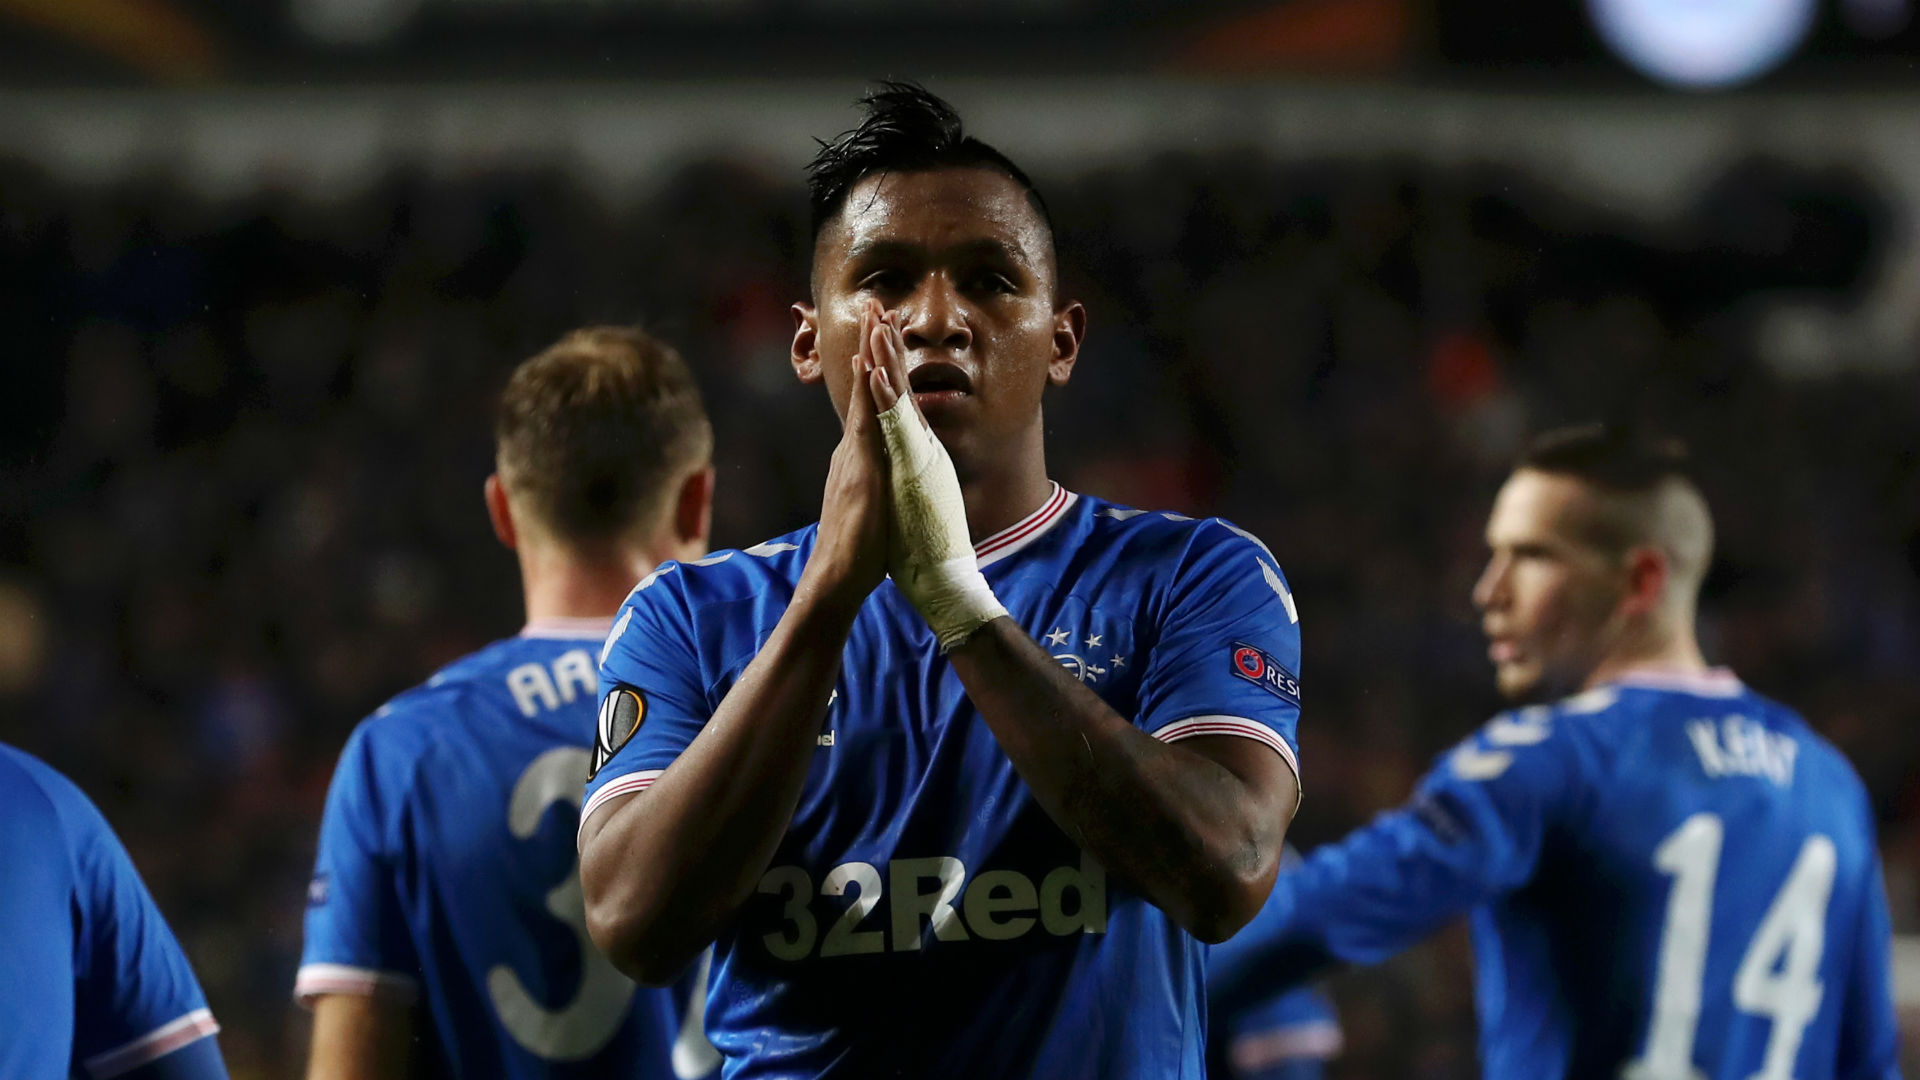 Rangers Aribo survive late scare to seal knock out phase in europa league